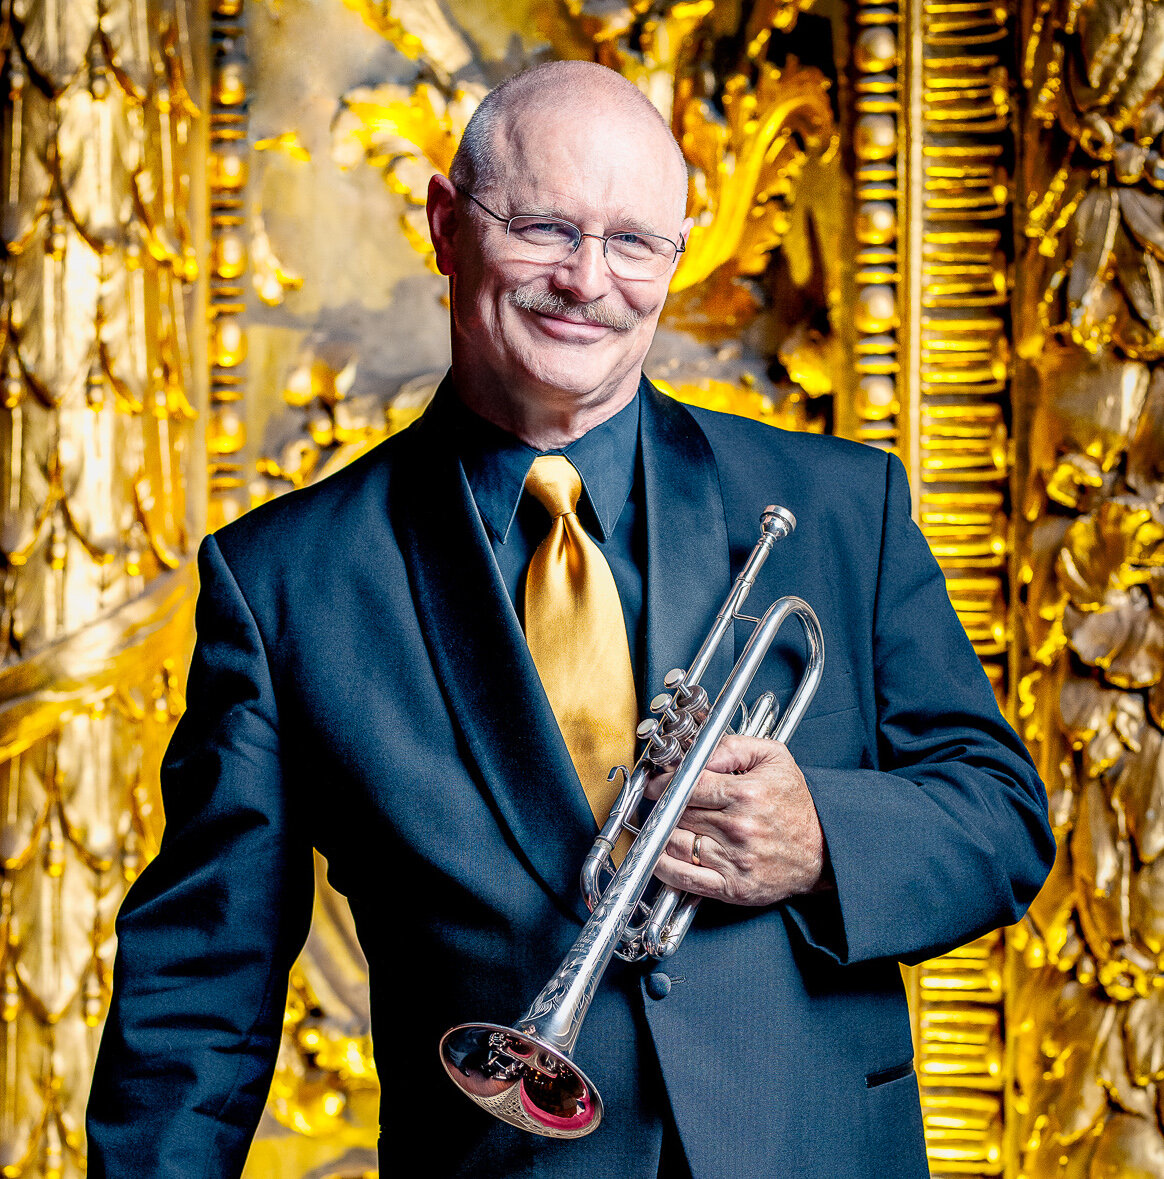 October 10,2019 - DREAMS AND MEMORIESWe open our 20th season celebration with trumpet fanfare, featuring internationally renowned soloist Terry Everson in Purcell's Sonata, and Dreams and Awakenings, a new work by Music Director David Feltner. Beautiful music by Tchaikovsky, Arensky, and Rachmaninoff round out this program.